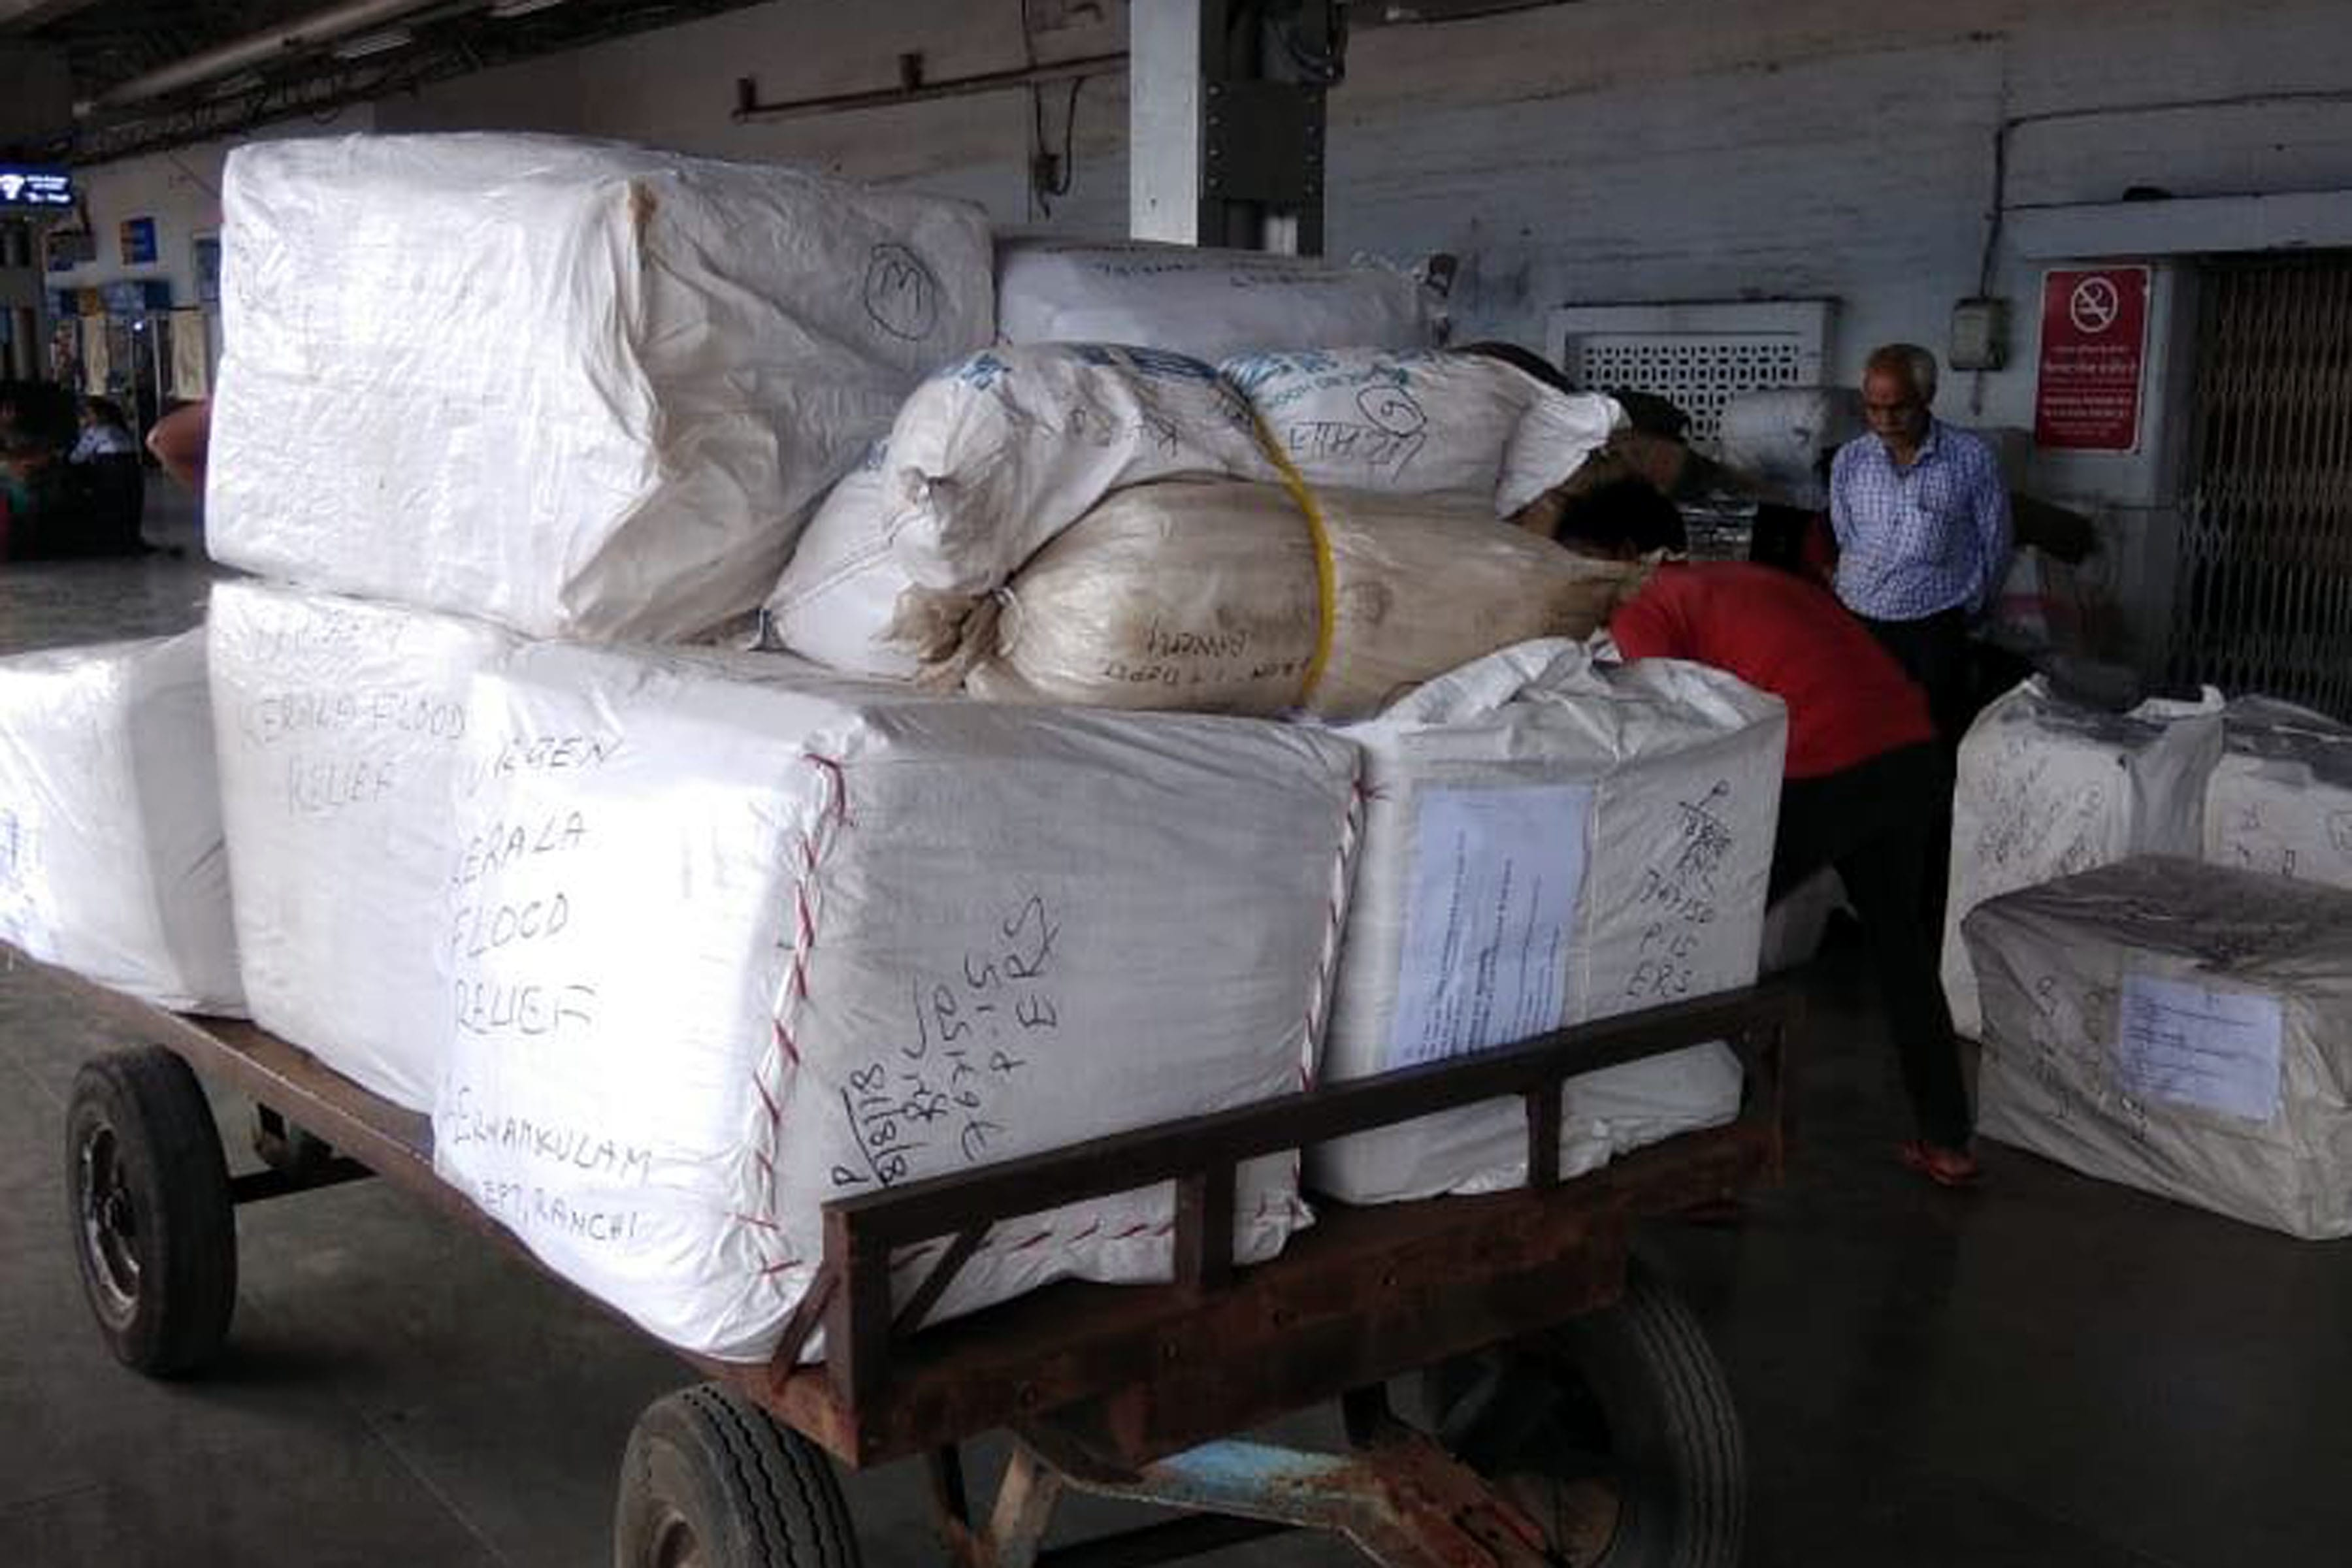 <p>Approximately Rs. 3 lakhs worth articles sent for relief in Kerala by the Income Tax department under Chief commissioner of income tax Ranchi on Saturday<br /> &nbsp;</p>